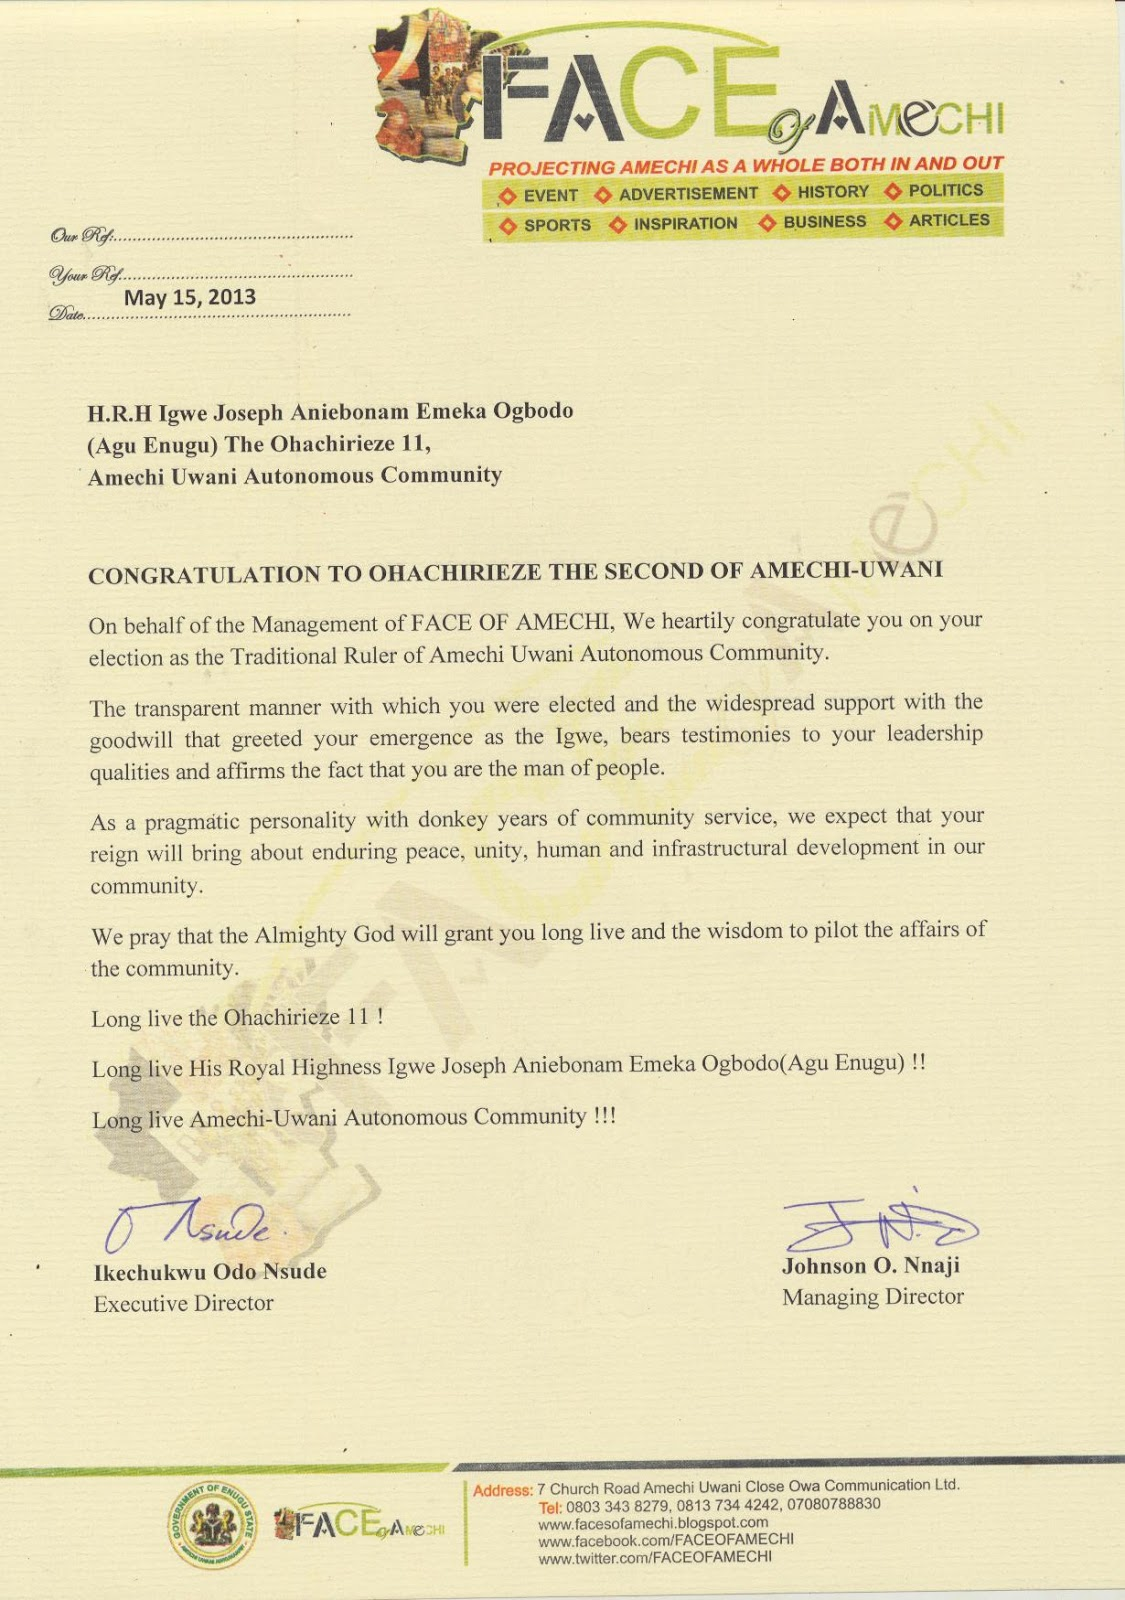 Congratulation letter to ohachirieze the second of amechi uwani hrh congratulation letter to ohachirieze the second of amechi uwani hrh igwe joseph aniebonam emeka ogbodo agu enugu on behalf of the management of face of thecheapjerseys Image collections